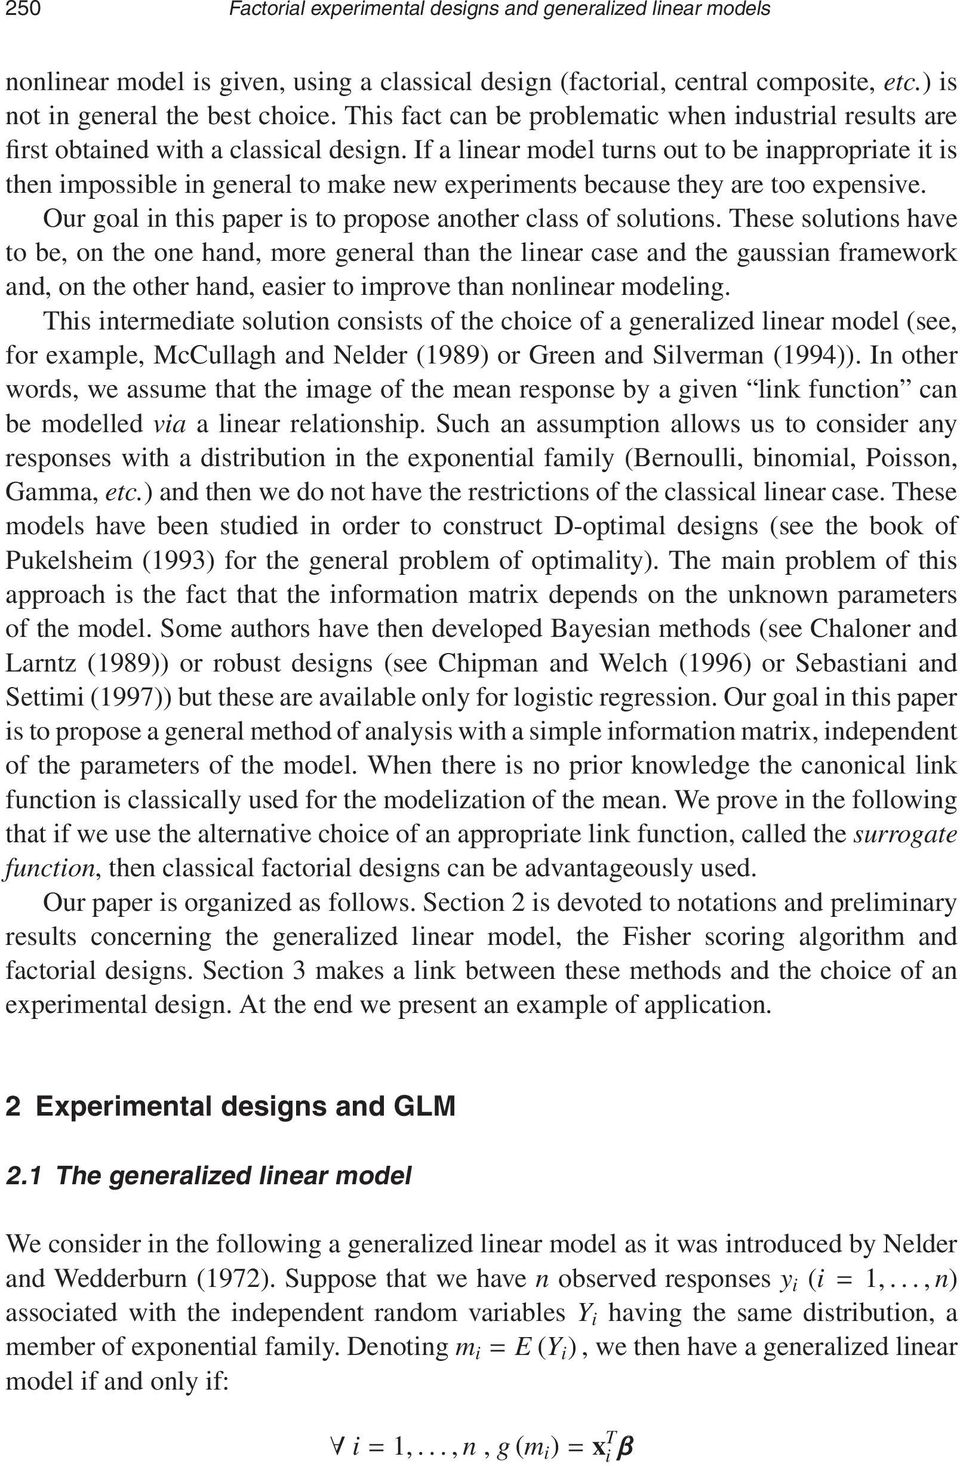 Factorial experimental designs and generalized linear models